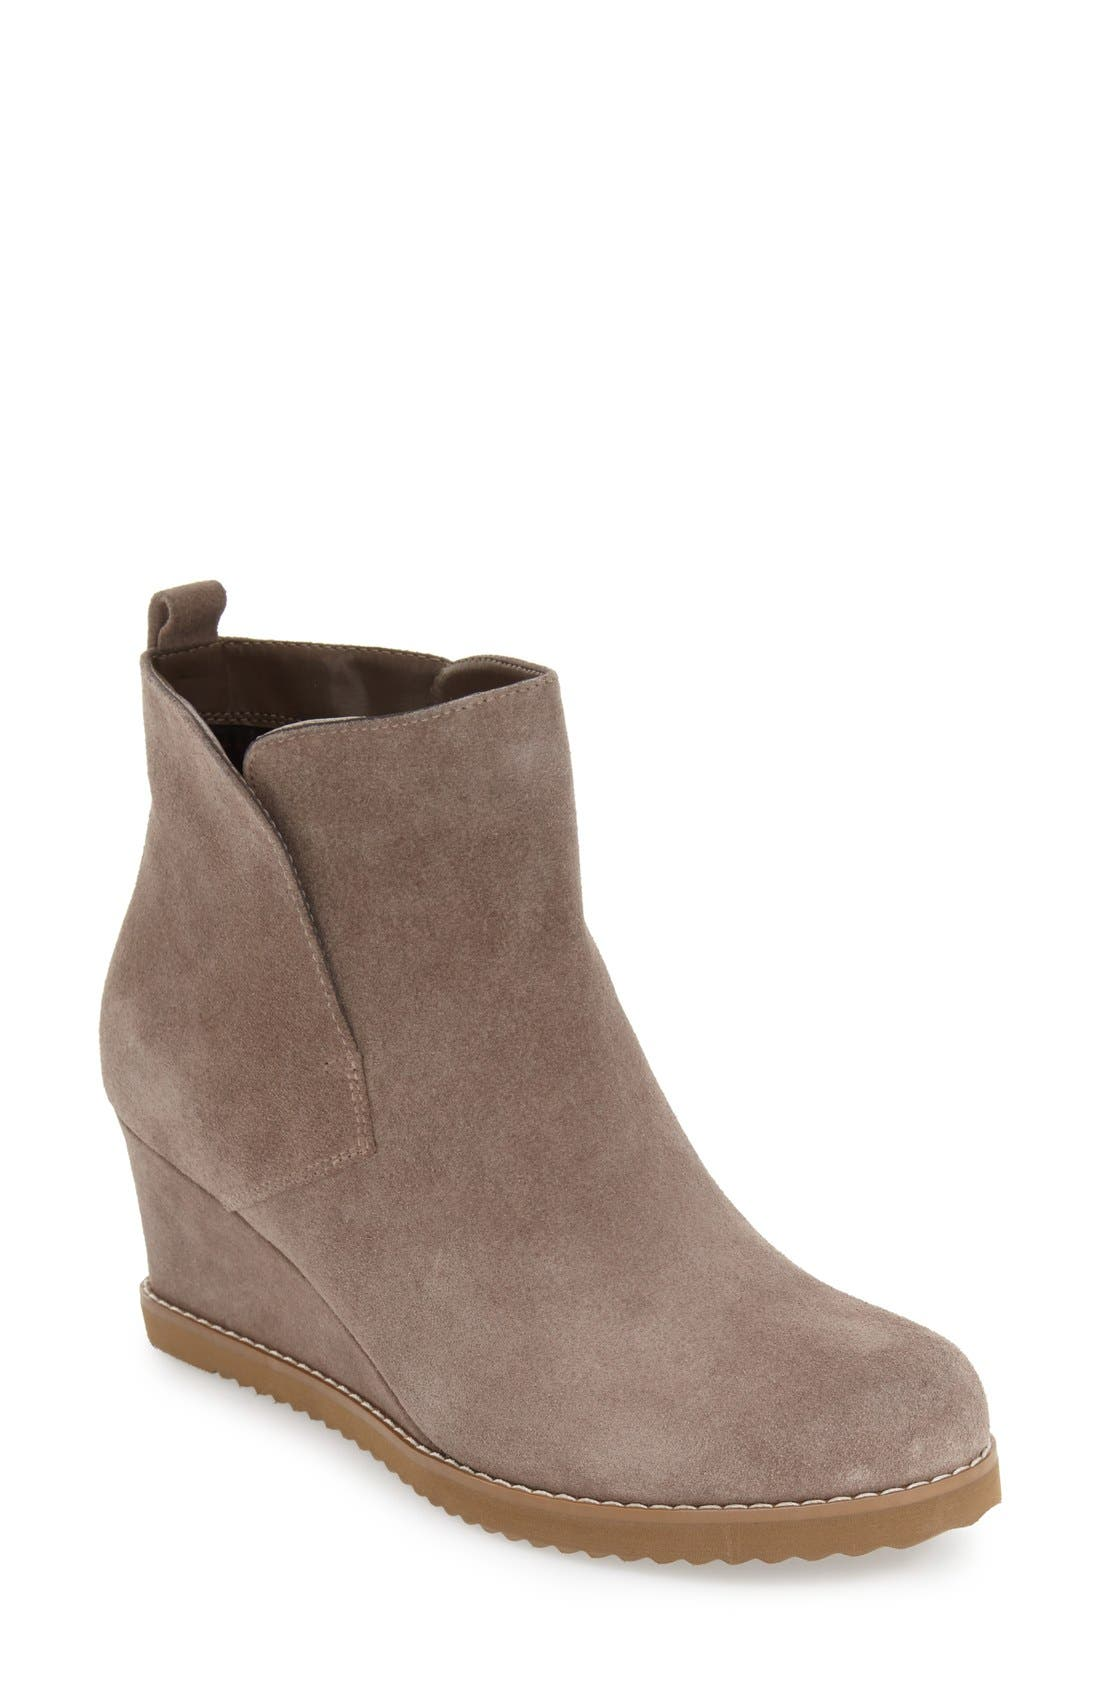 'Karla' Waterproof Wedge Bootie,                             Main thumbnail 1, color,